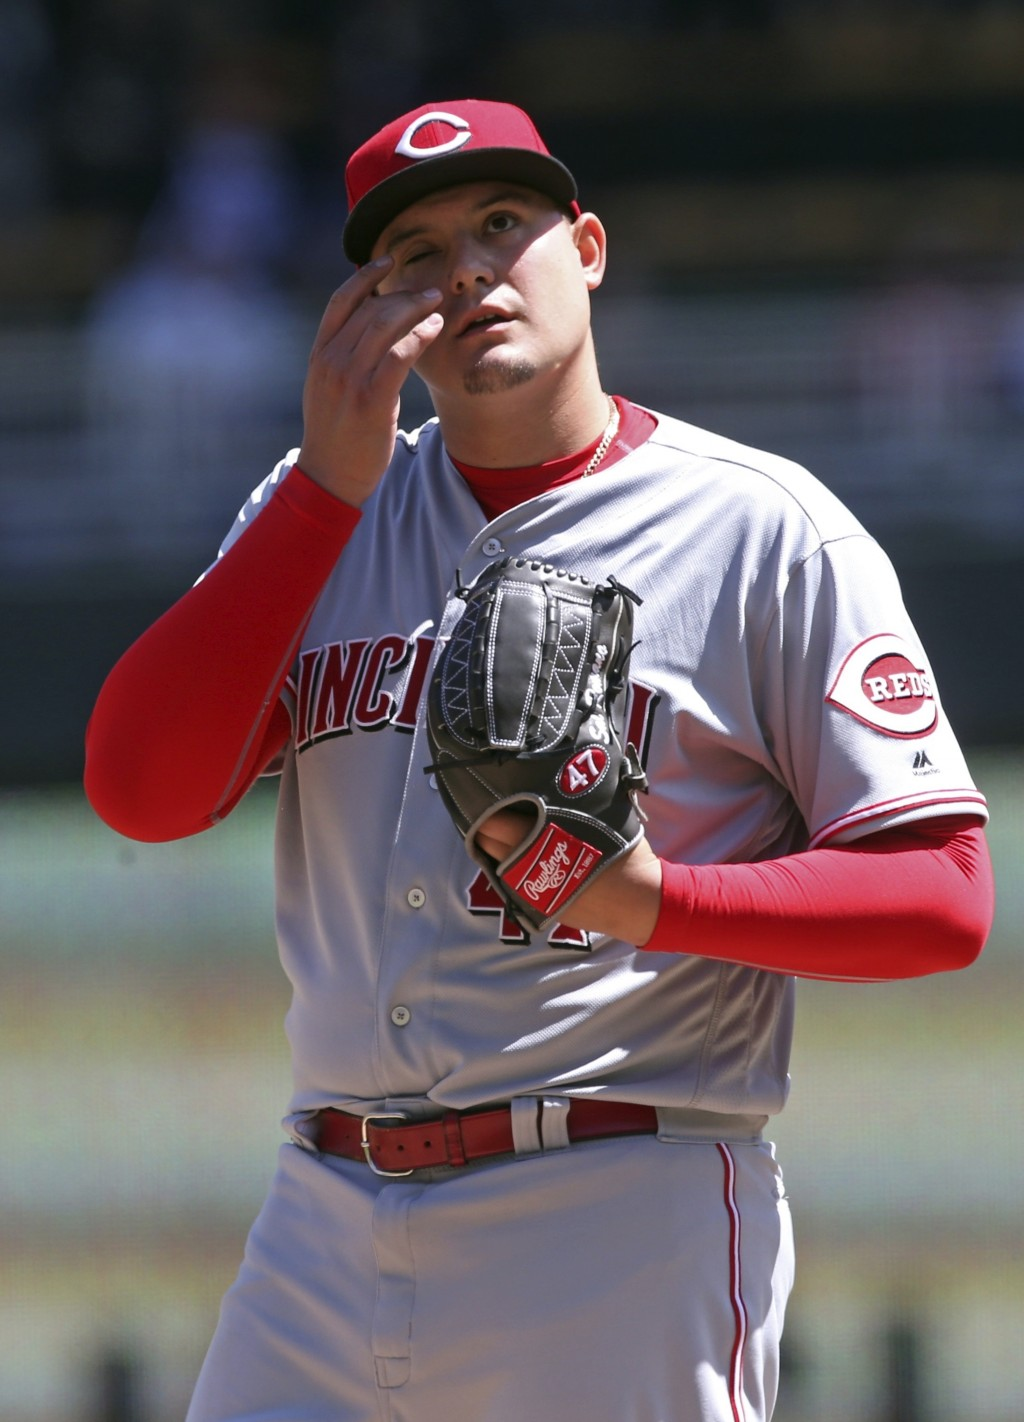 Cincinnati Reds' pitcher Sal Romano wipes his face after giving up a walk to Minnesota Twins' Ehire Adrianza in the third inning of a baseball game Sa...